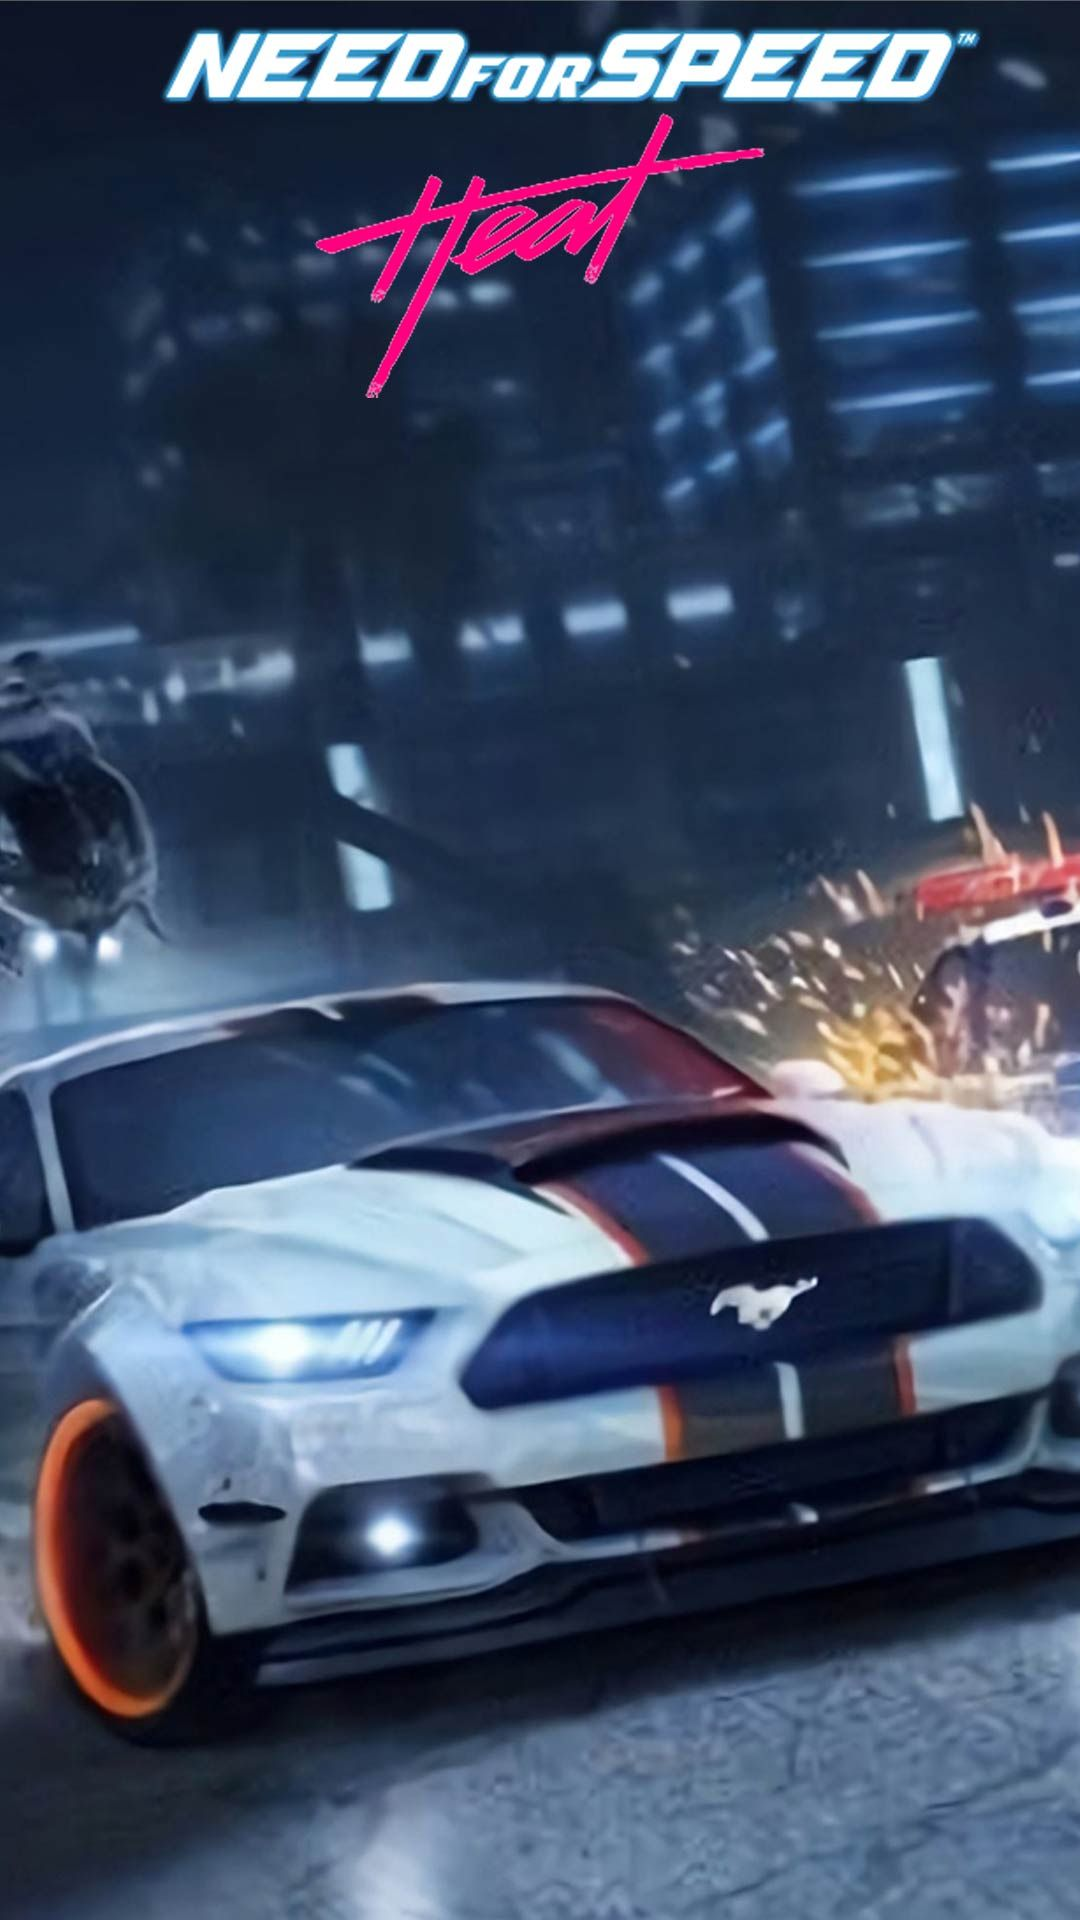 Need For Speed Heat Wallpaper Phone Backgrounds For Free Download In 2020 Hd Phone Backgrounds Android Lock Screen Phone Backgrounds